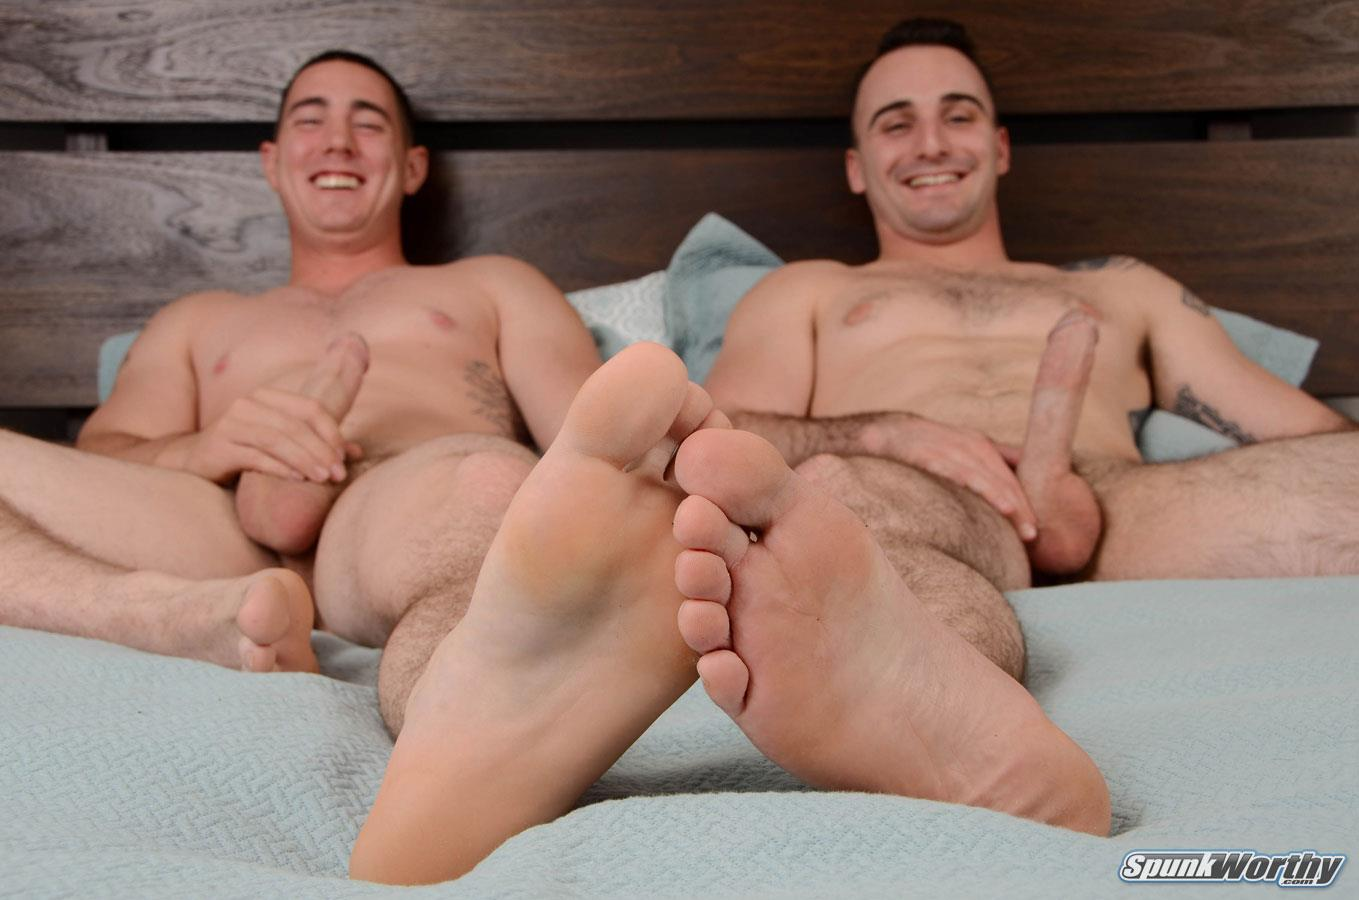 SpunkWorthy Damien and Tom Army Buddies Jerking Off Together Army Cock Amateur Gay Porn 07 Straight Army Boys Share Some Jerkoff Time Together